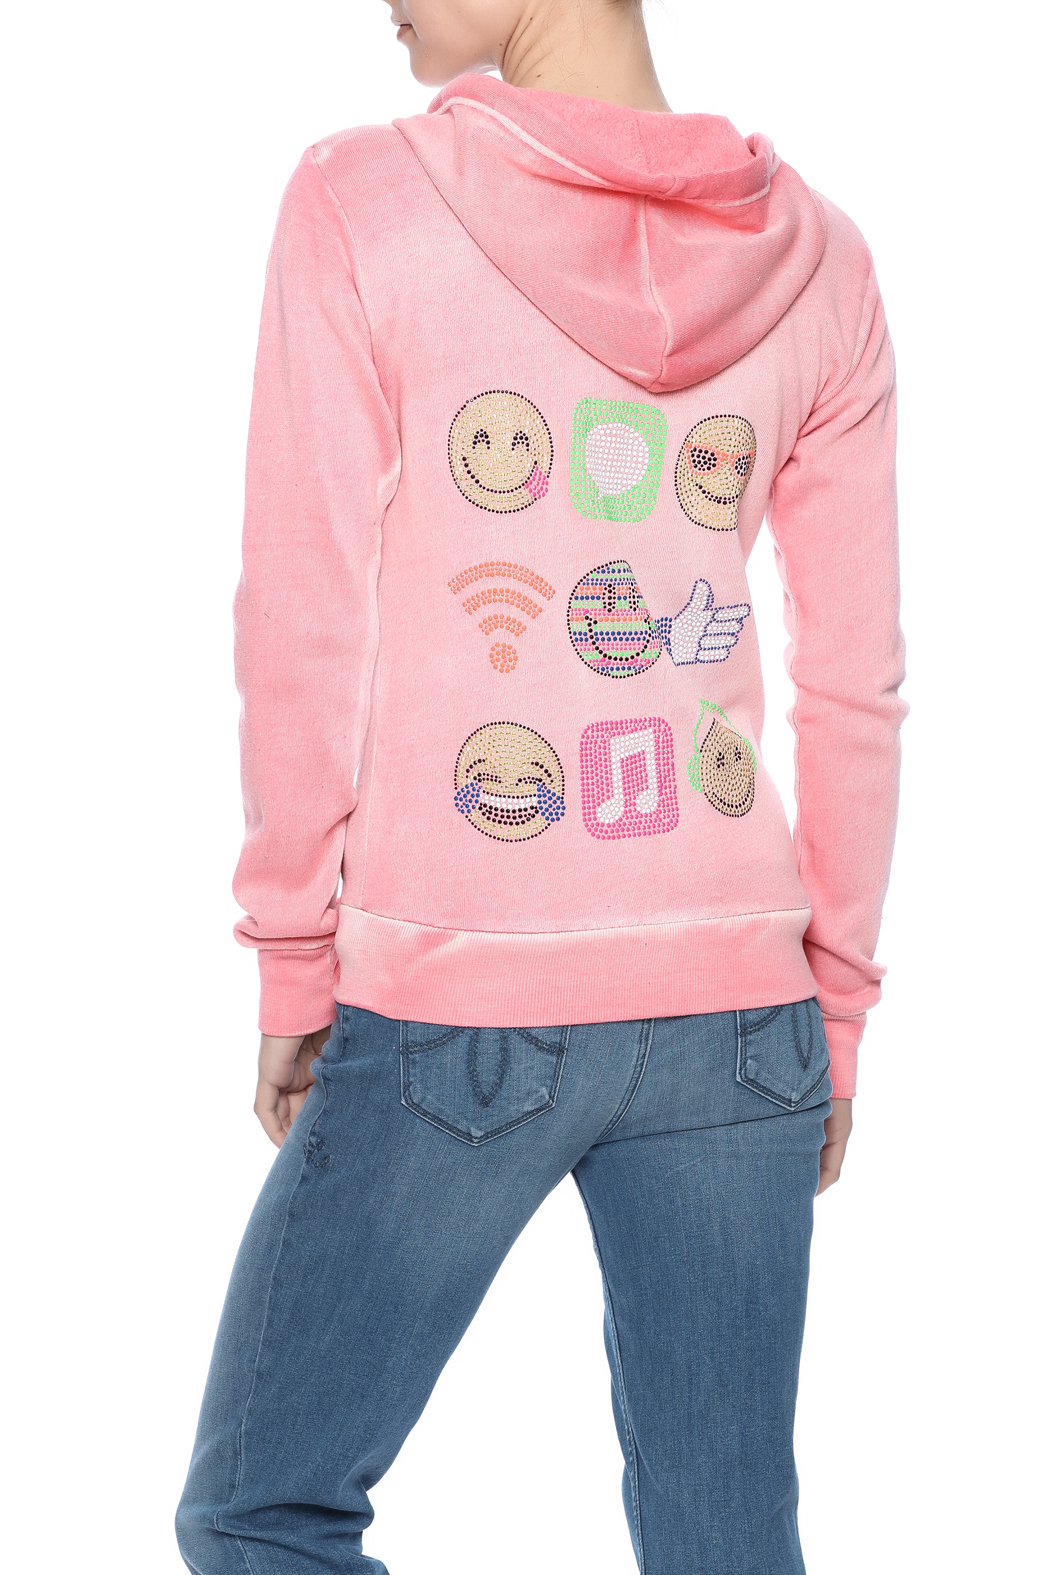 8208f7f7b Butter Super Soft Social Media Hoodie from Long Island by Max ...